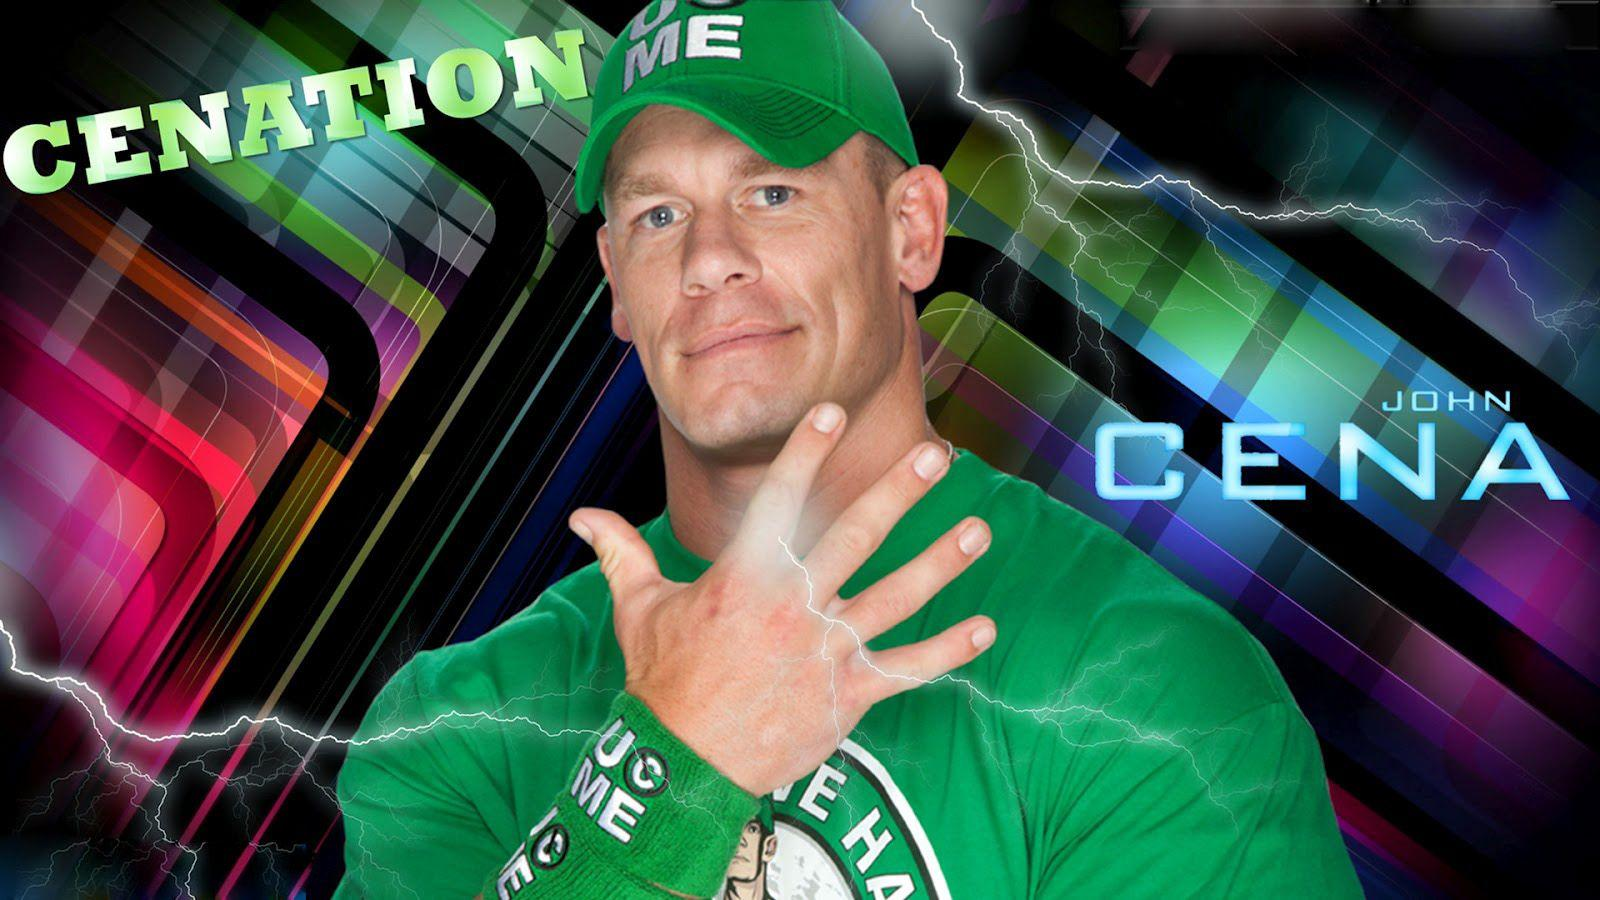 john cena cute wallpapers - wallpaper cave